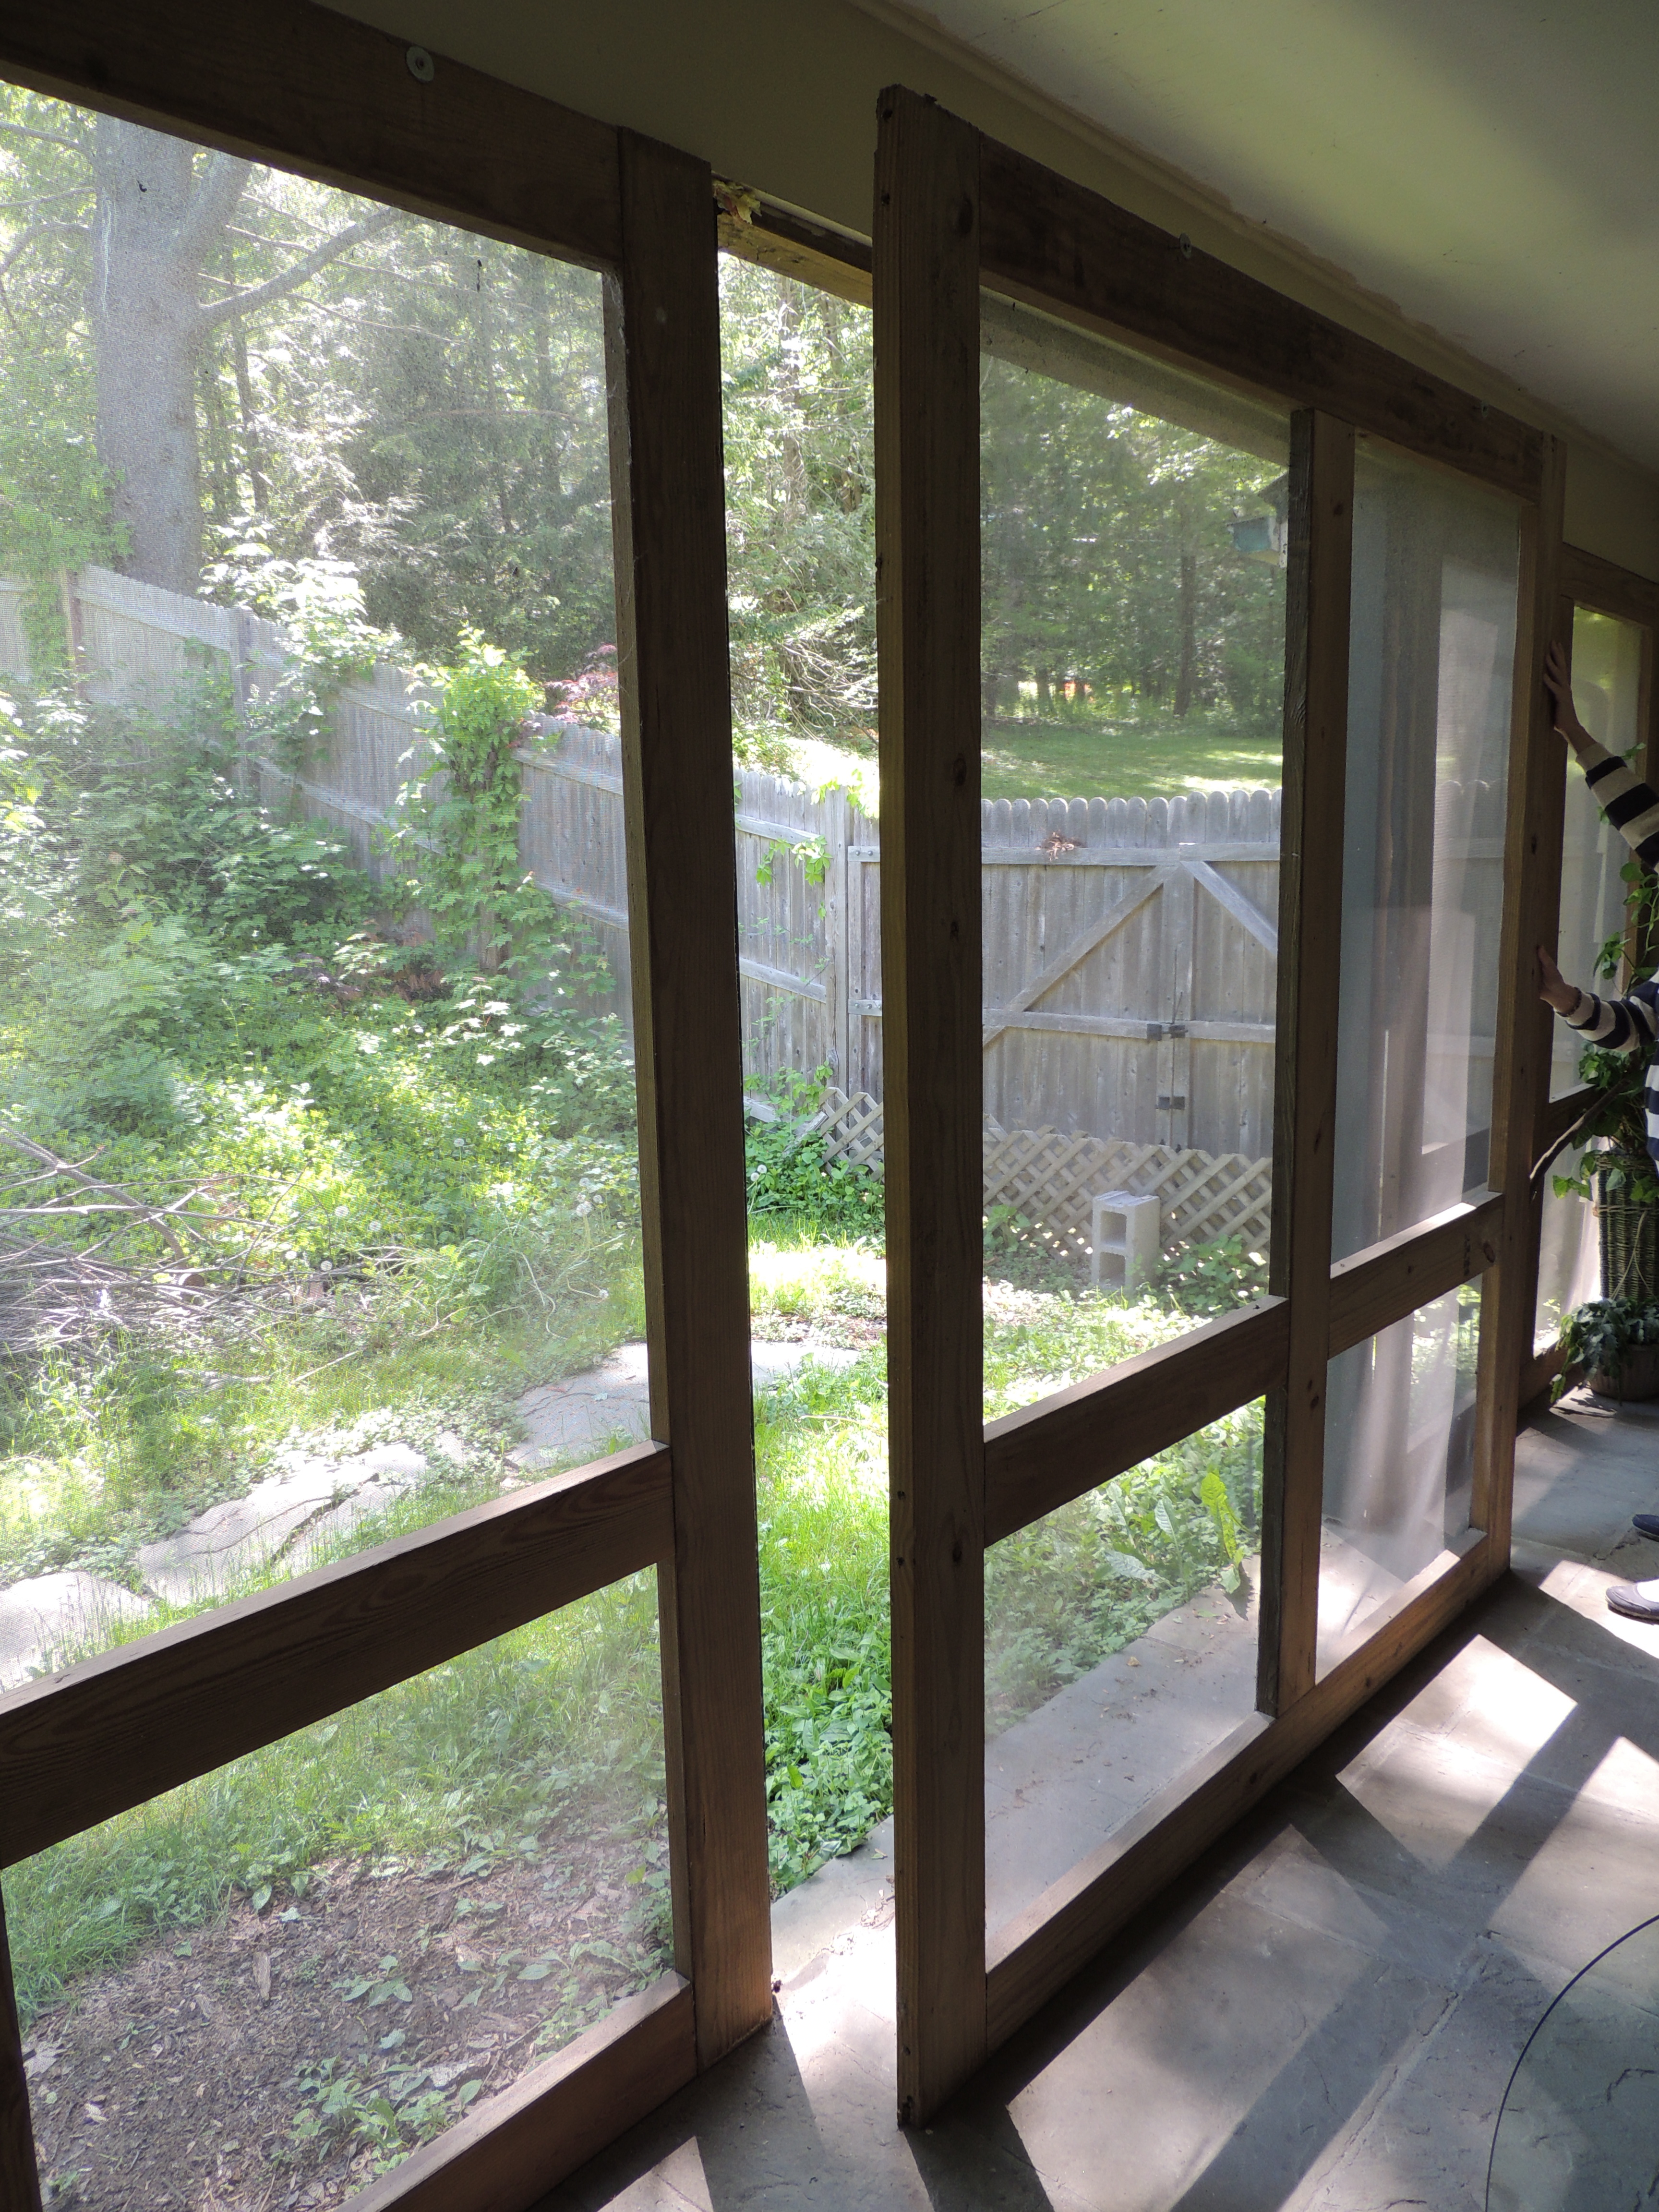 Easy to make screened in porch hudson cabinet making for Window options for screened in porch